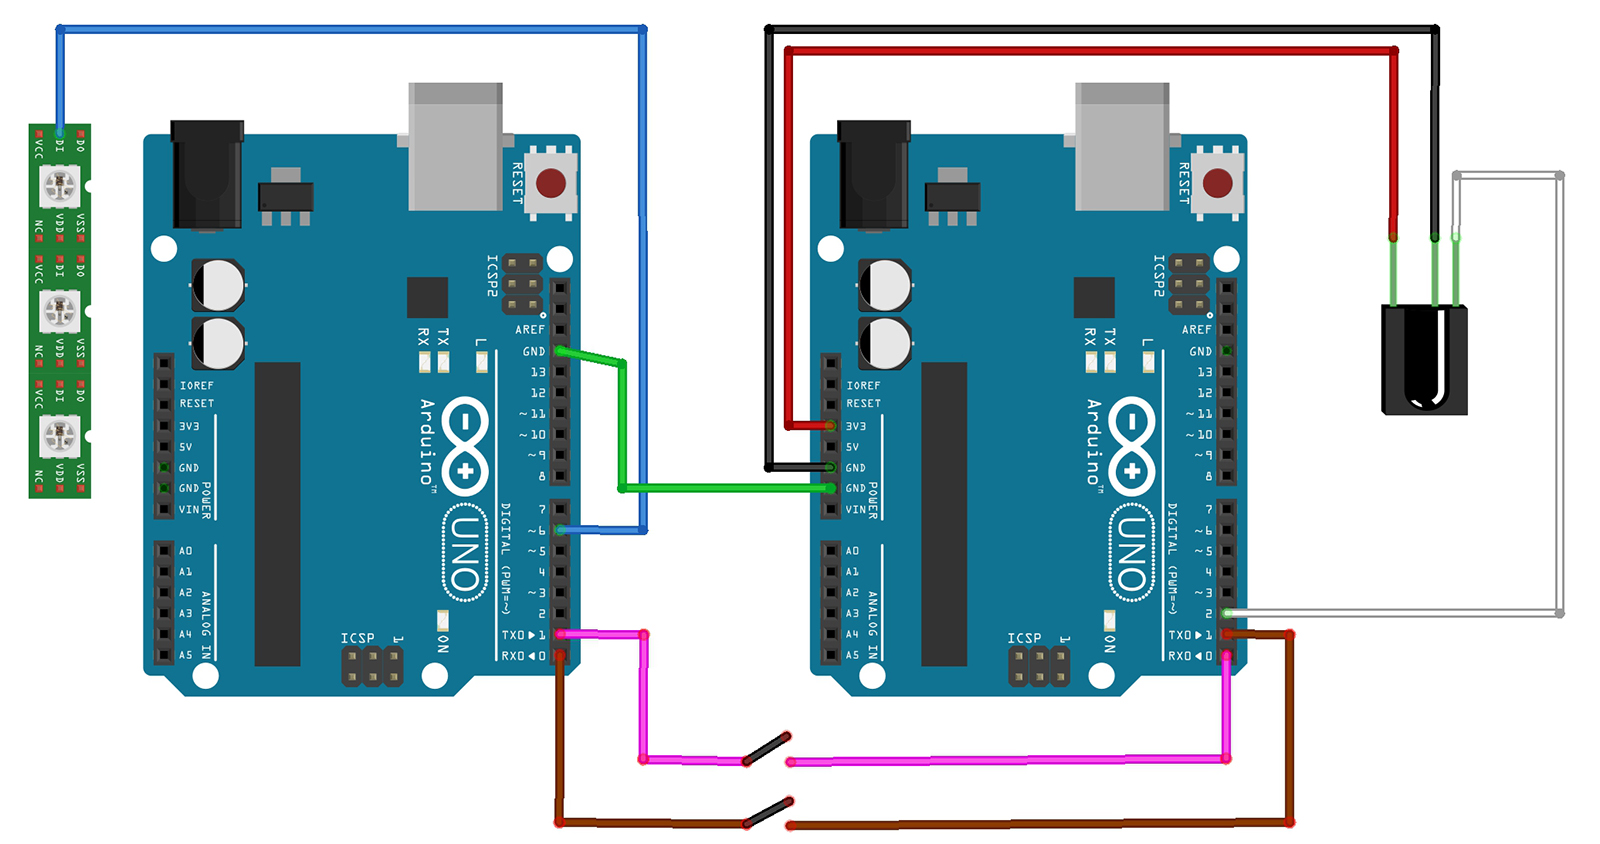 Sketch for dht11 and arduino uno